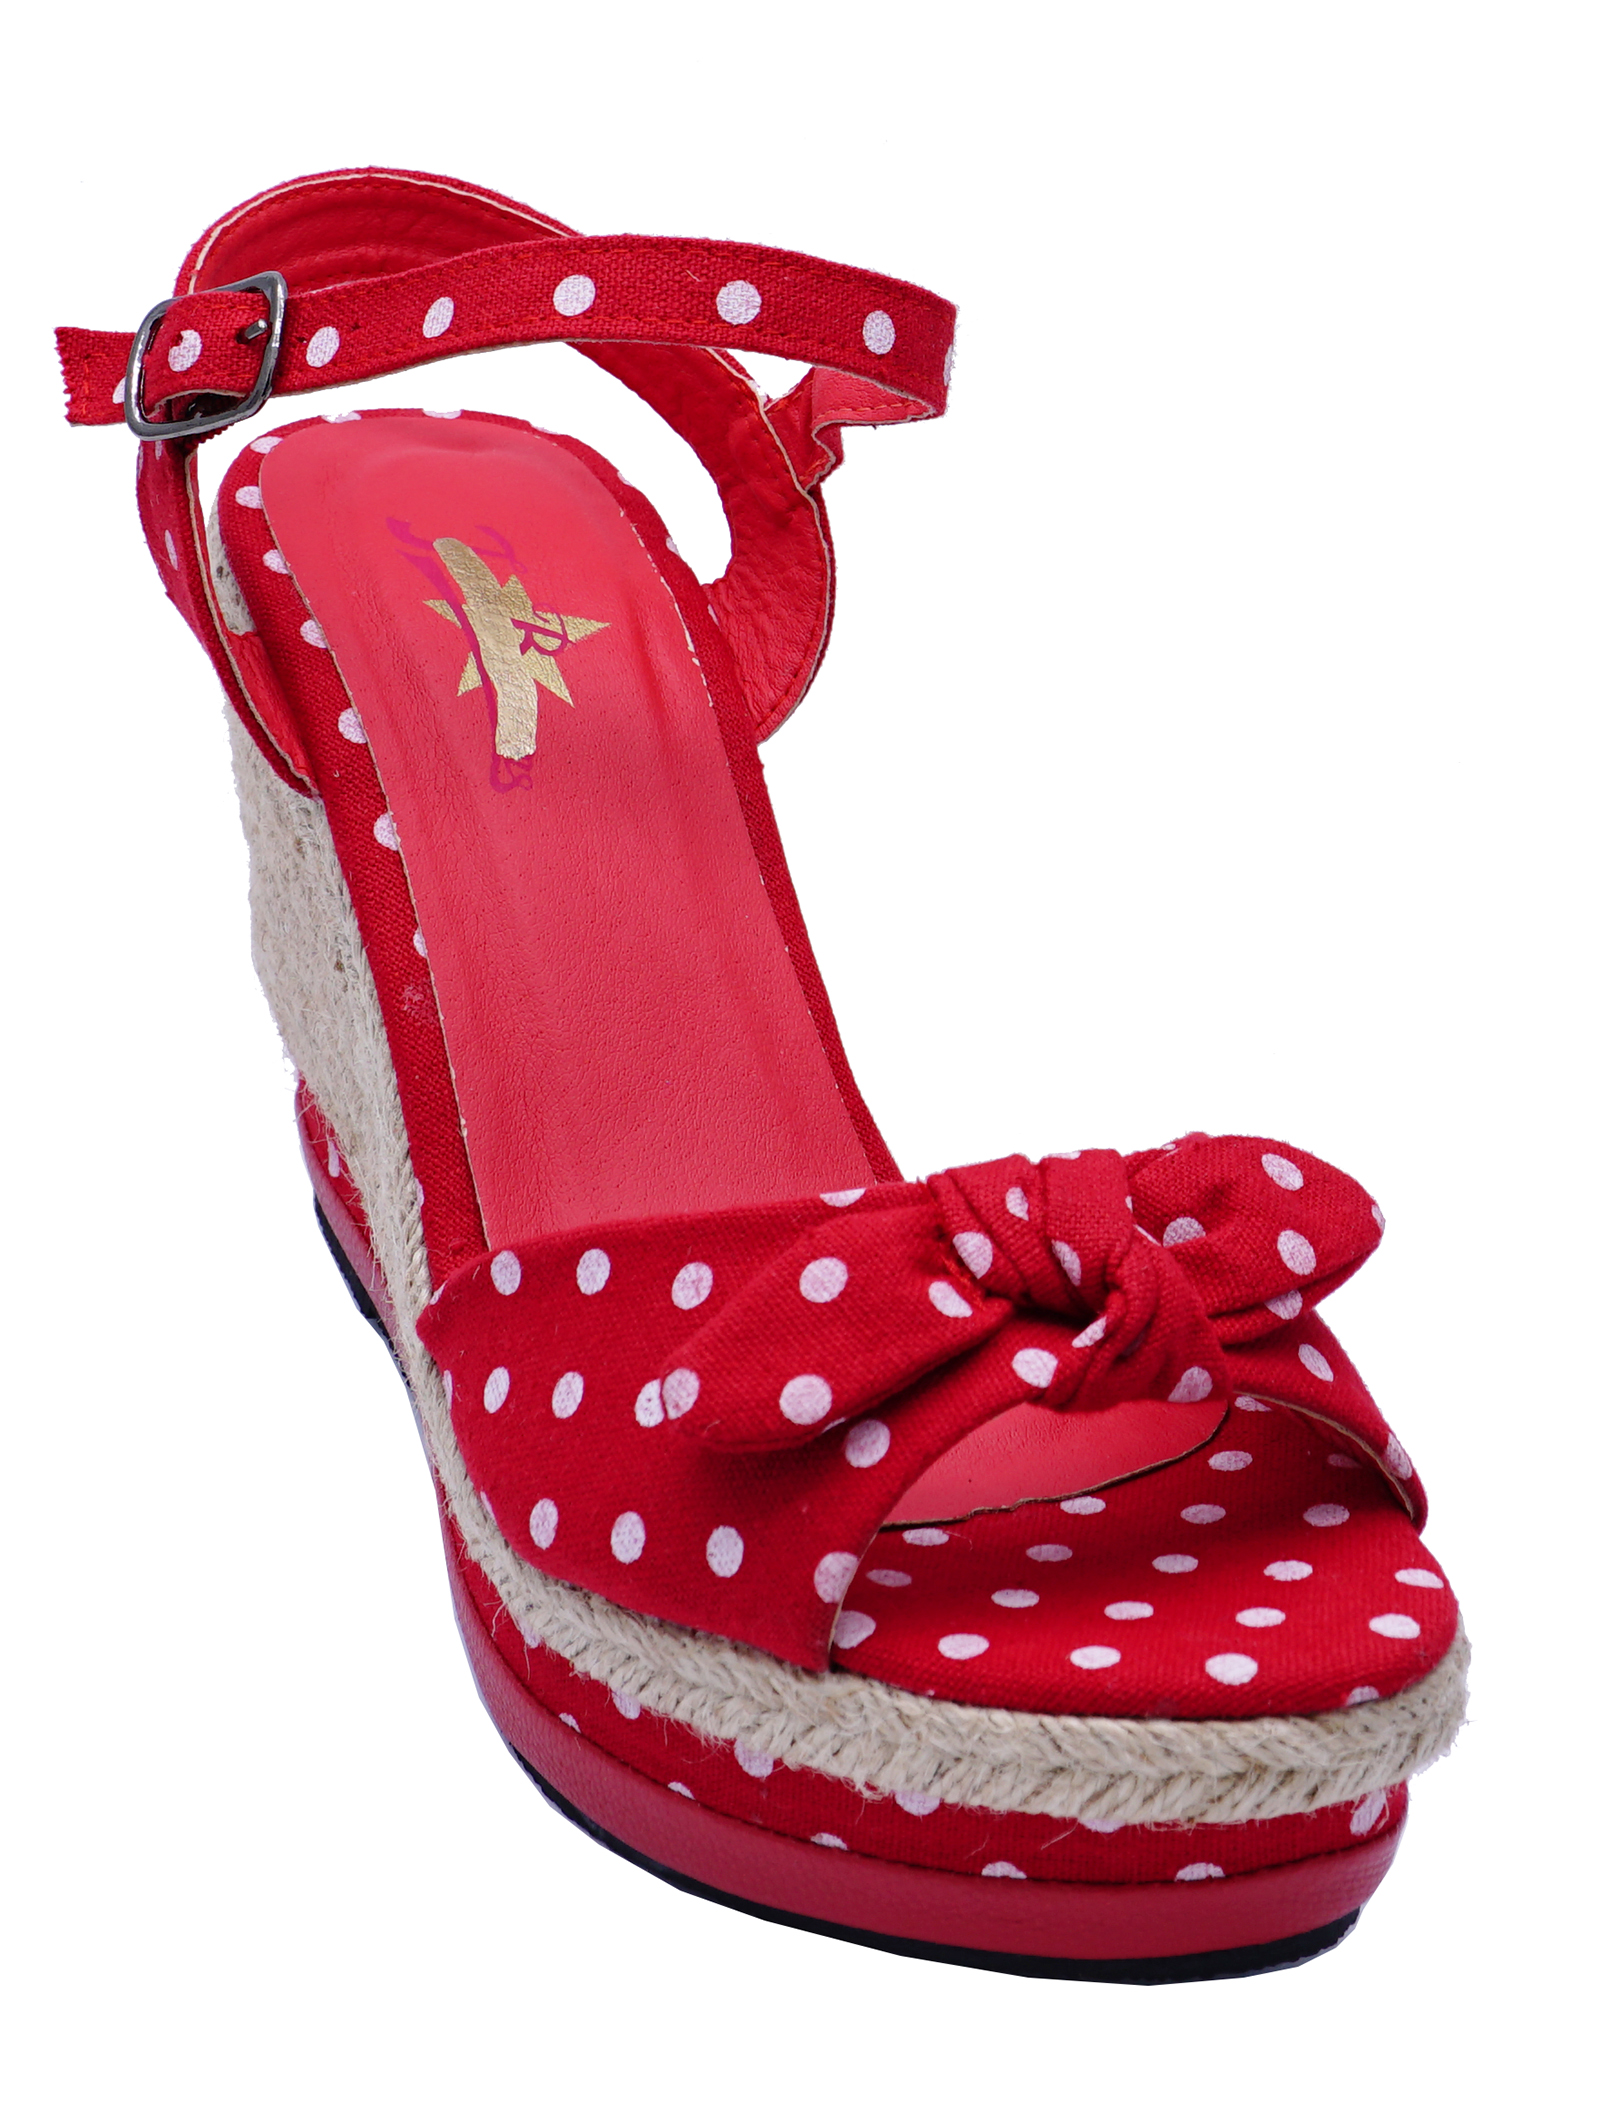 LADIES-RED-POLKA-DOT-ROCKABILLY-OPEN-TOE-COMFY-WEDGES-SANDALS-SHOES-SIZES-3-8 thumbnail 8